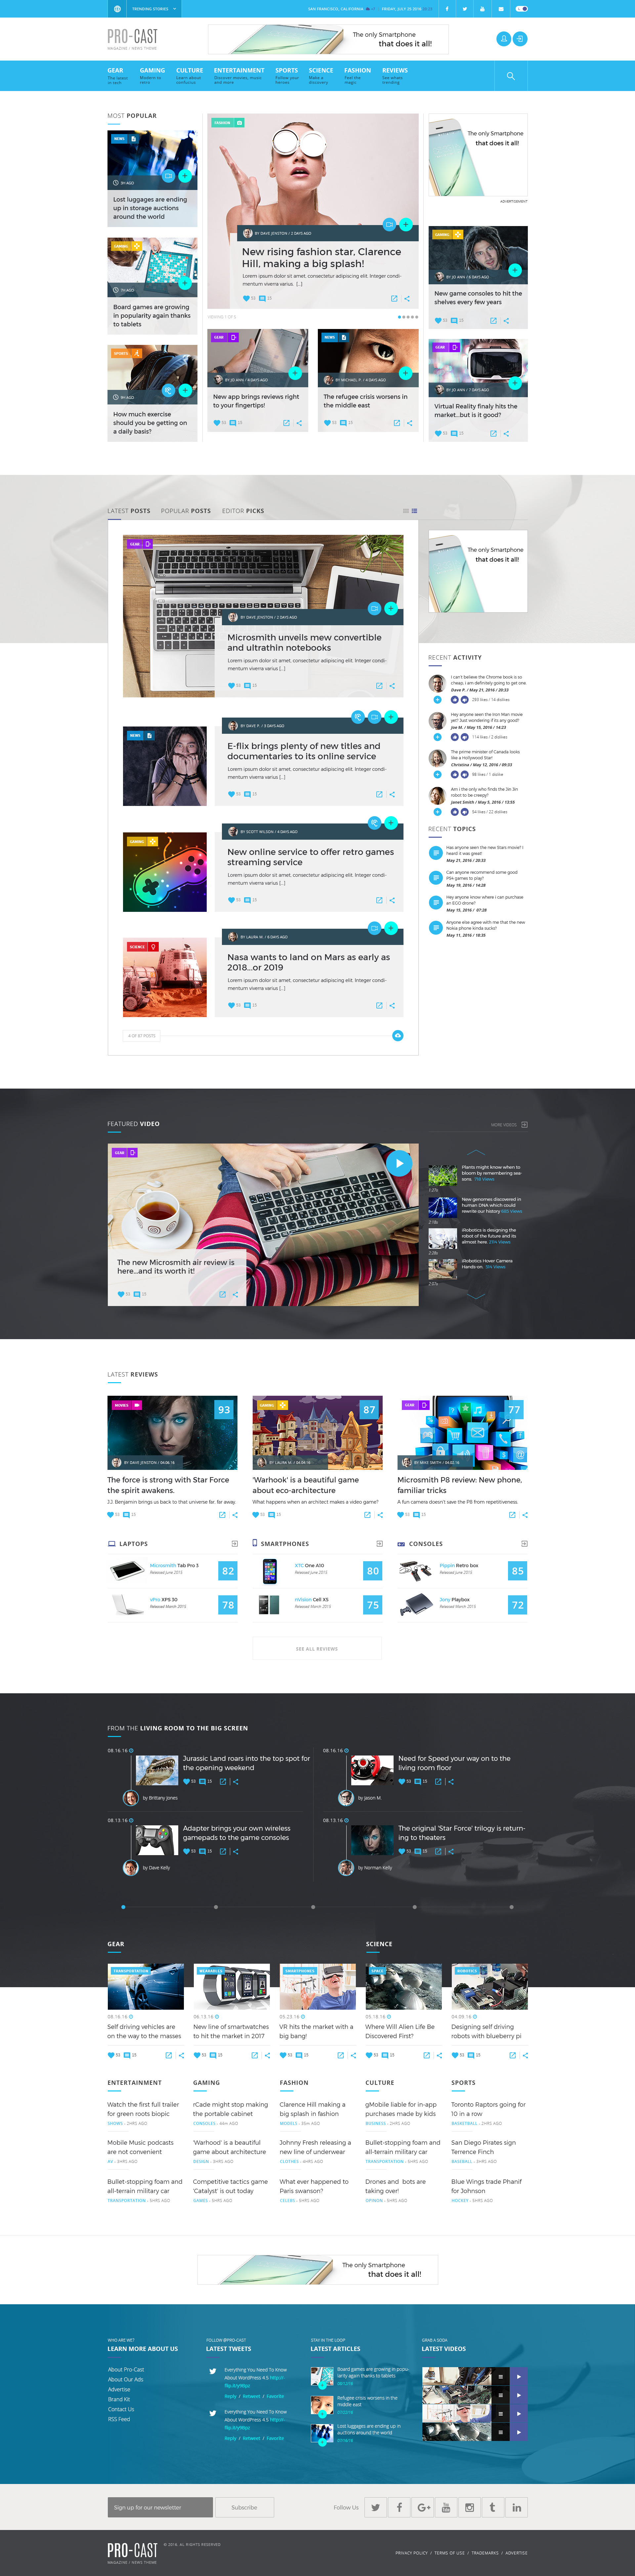 PRO-CAST Magazine HTML5 Template by Micro_Themes | ThemeForest